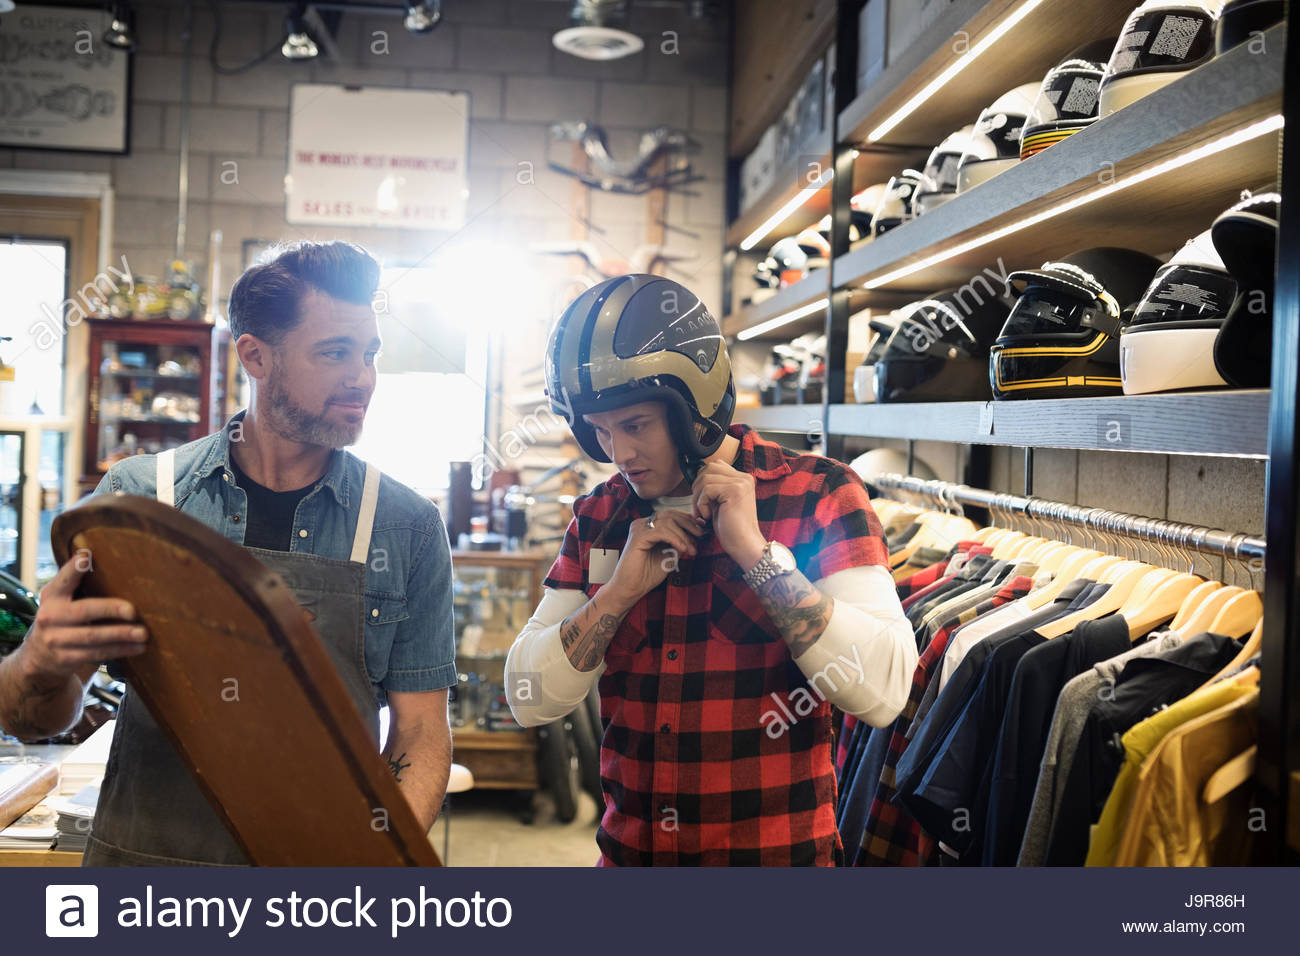 Motorcycle shop owner holding mirror for customer trying on helmet - Stock Image